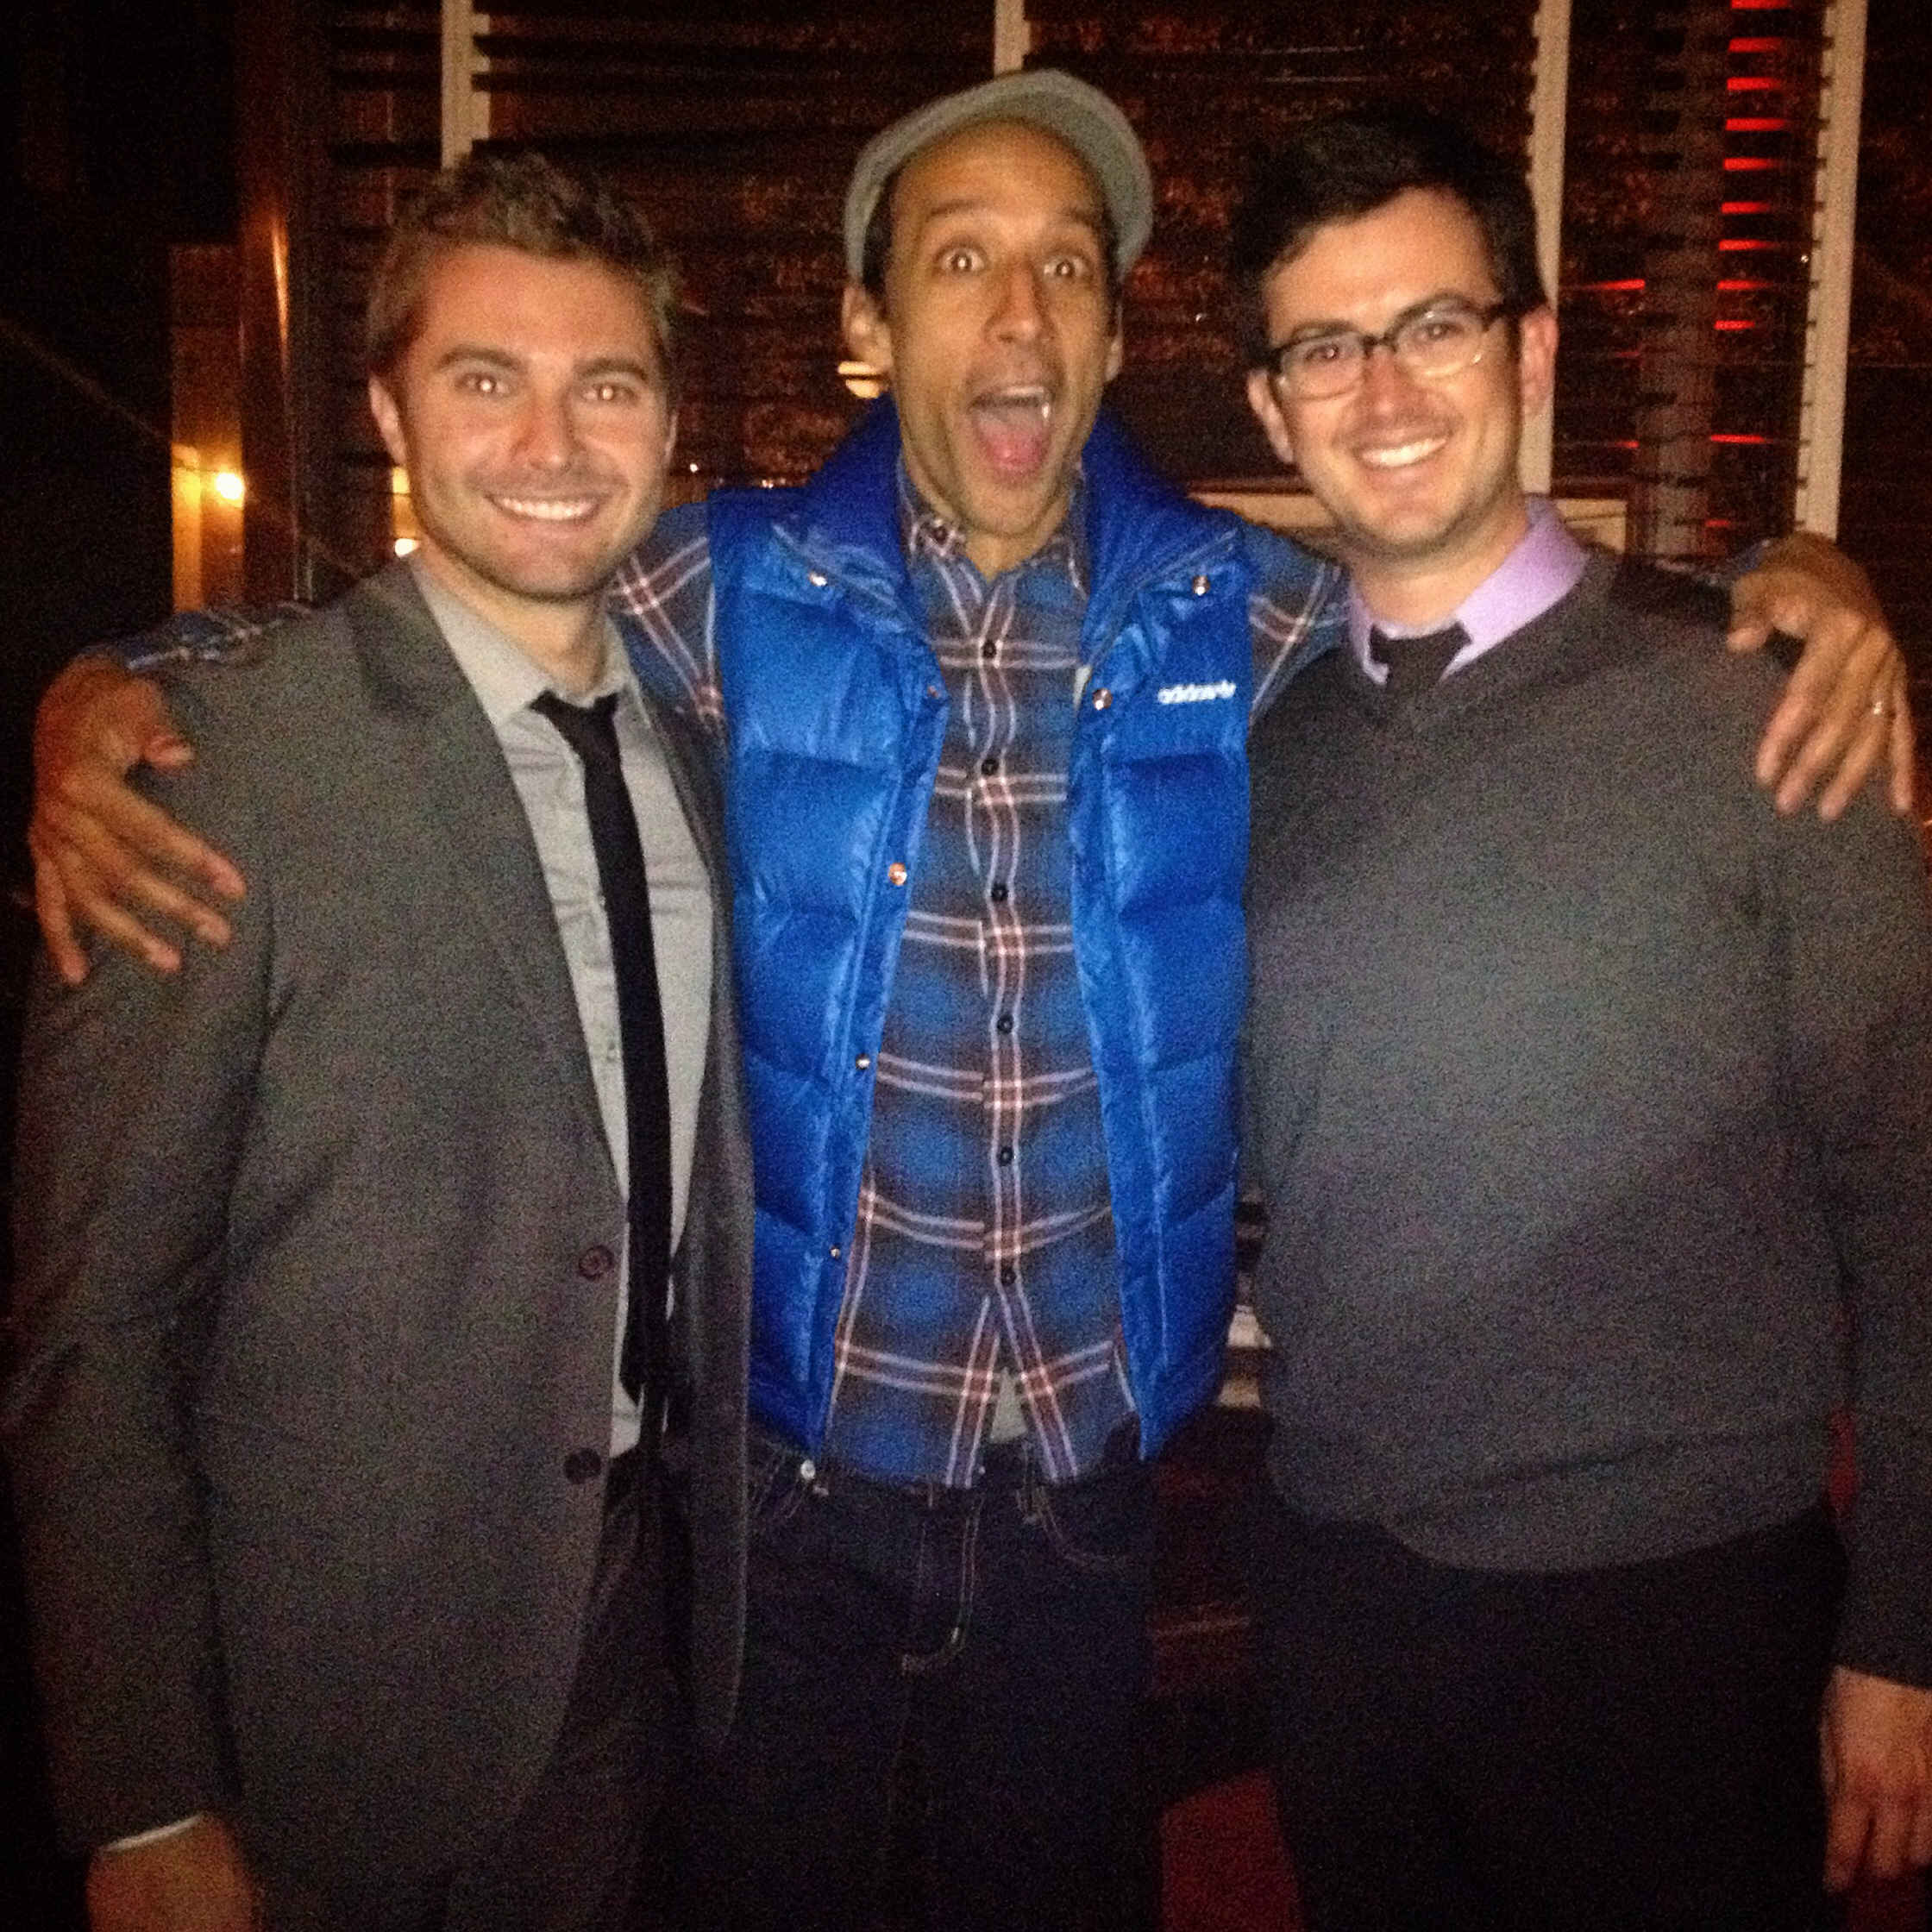 Richie and Matt with Danny Pudi